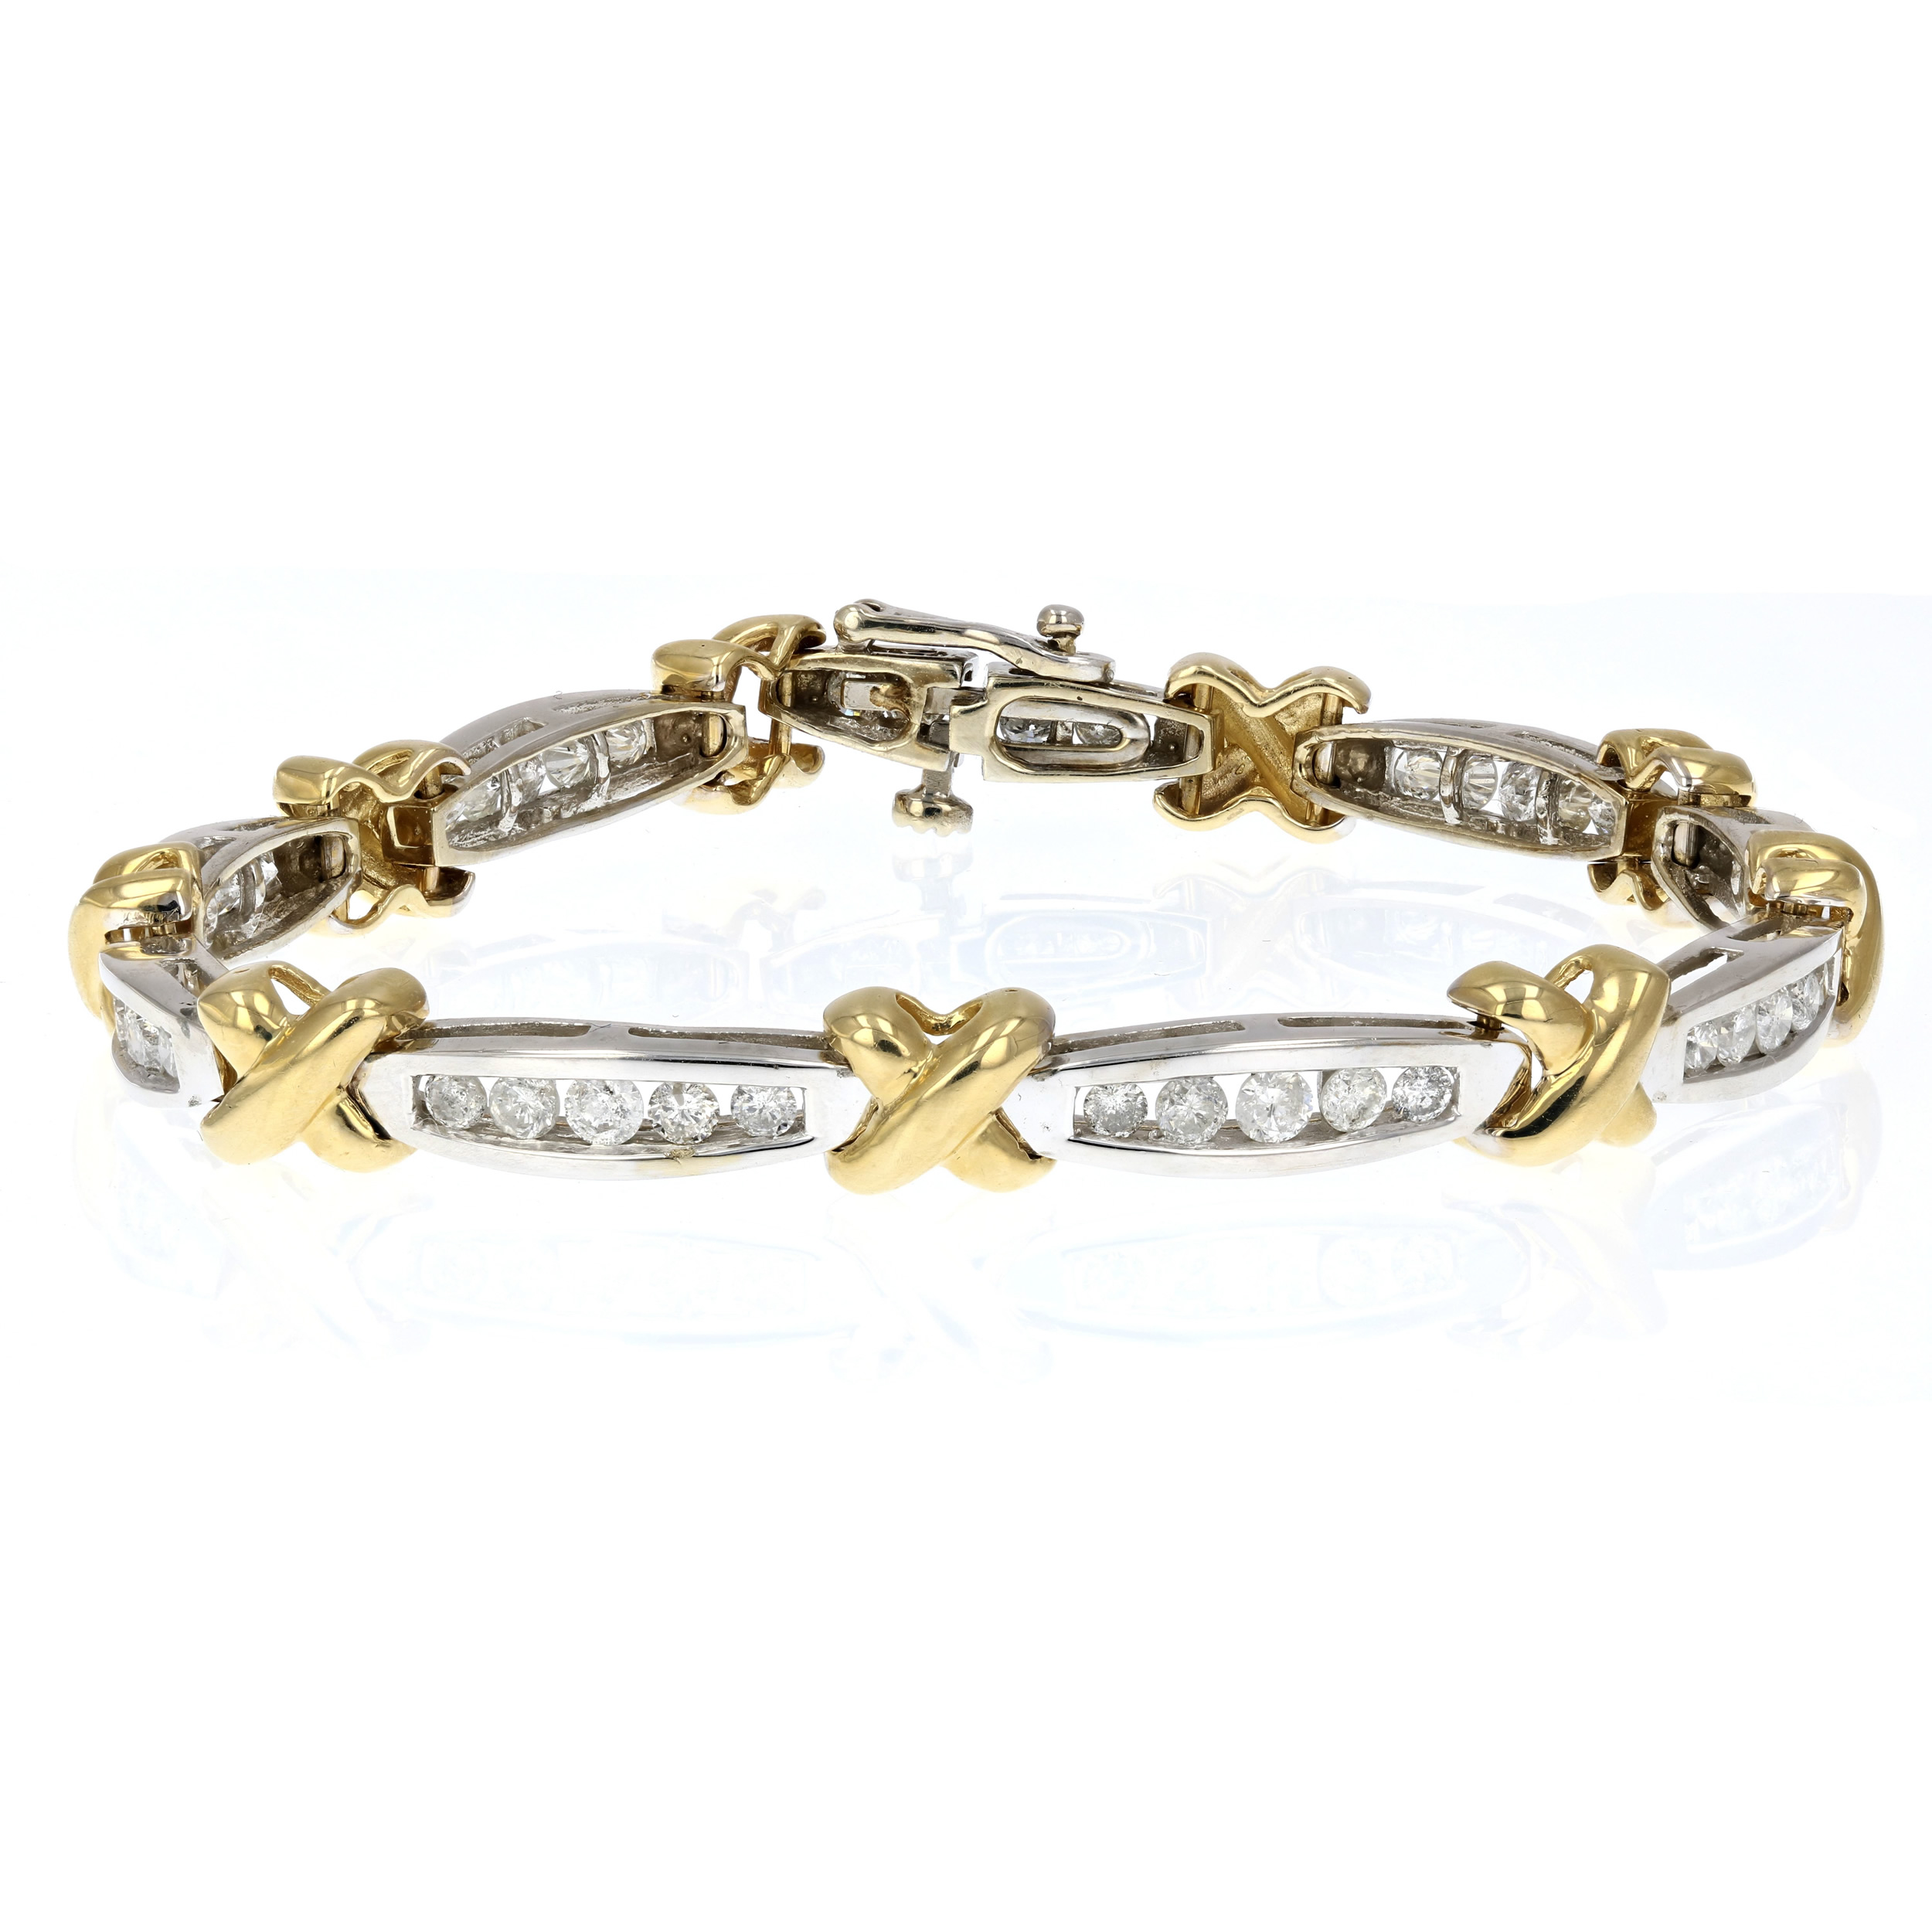 2 CT Diamond Tennis Bracelet in 14K Yellow Gold | eBay